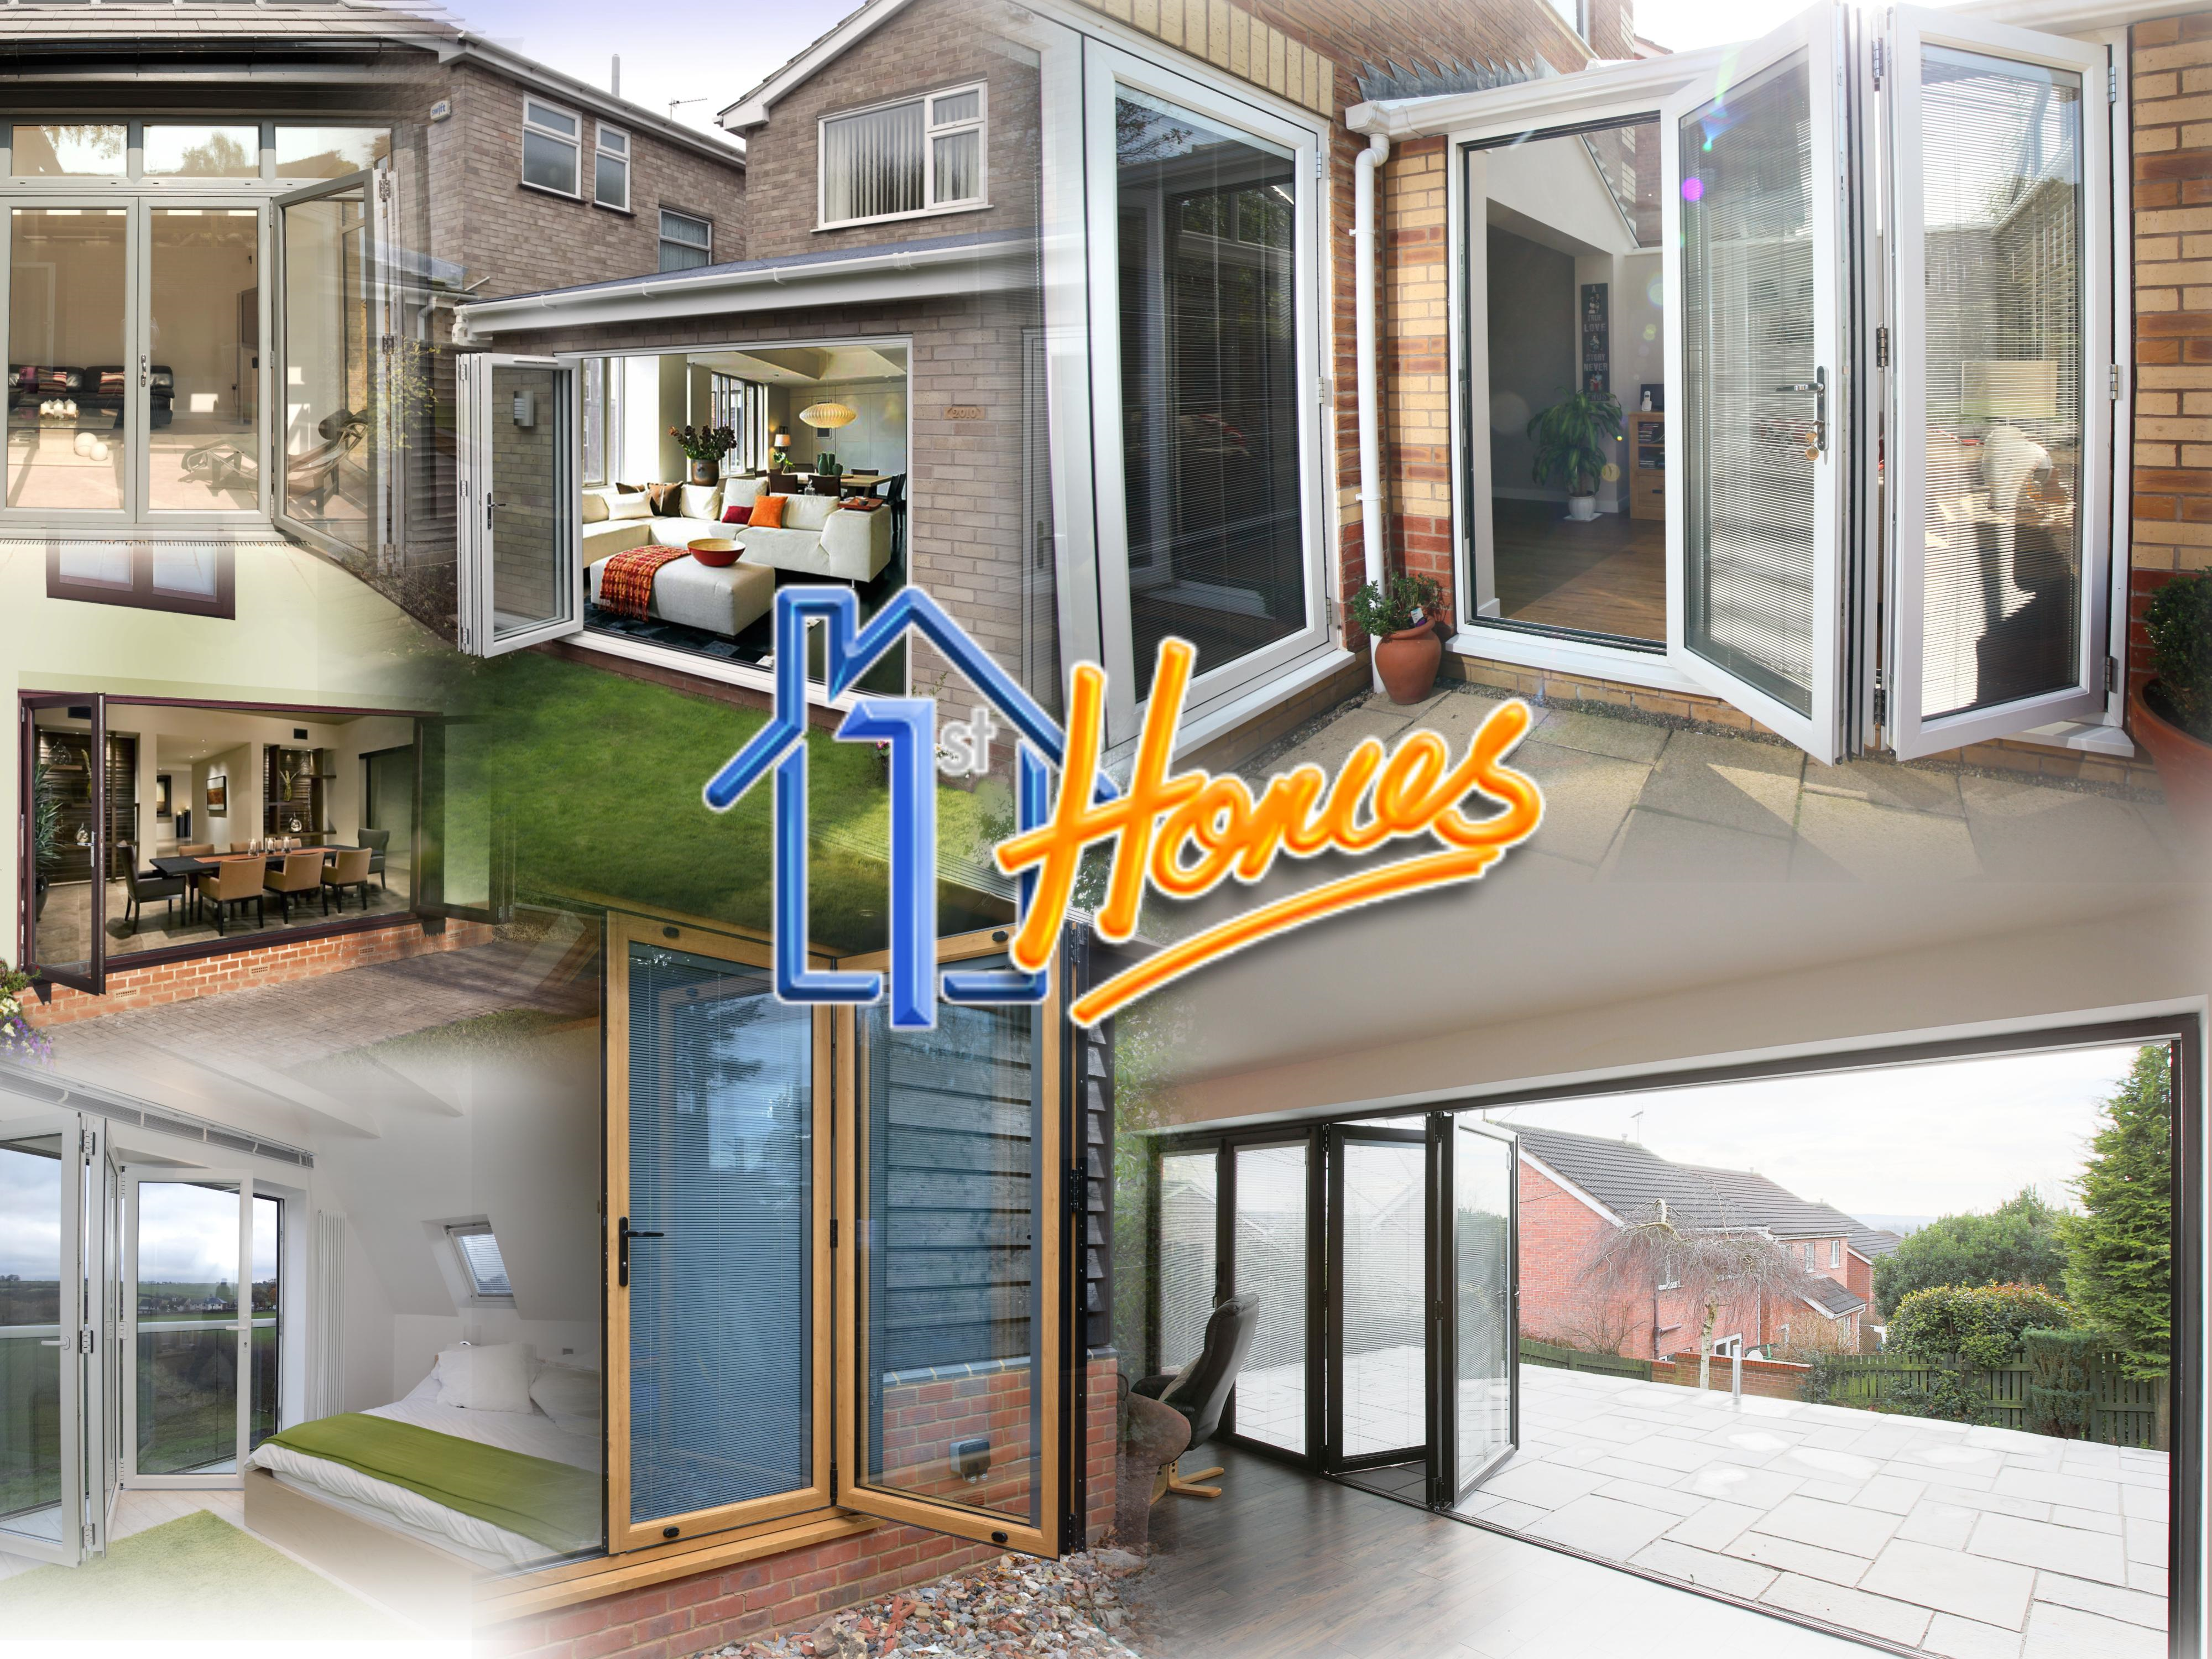 1st Homes Ltd